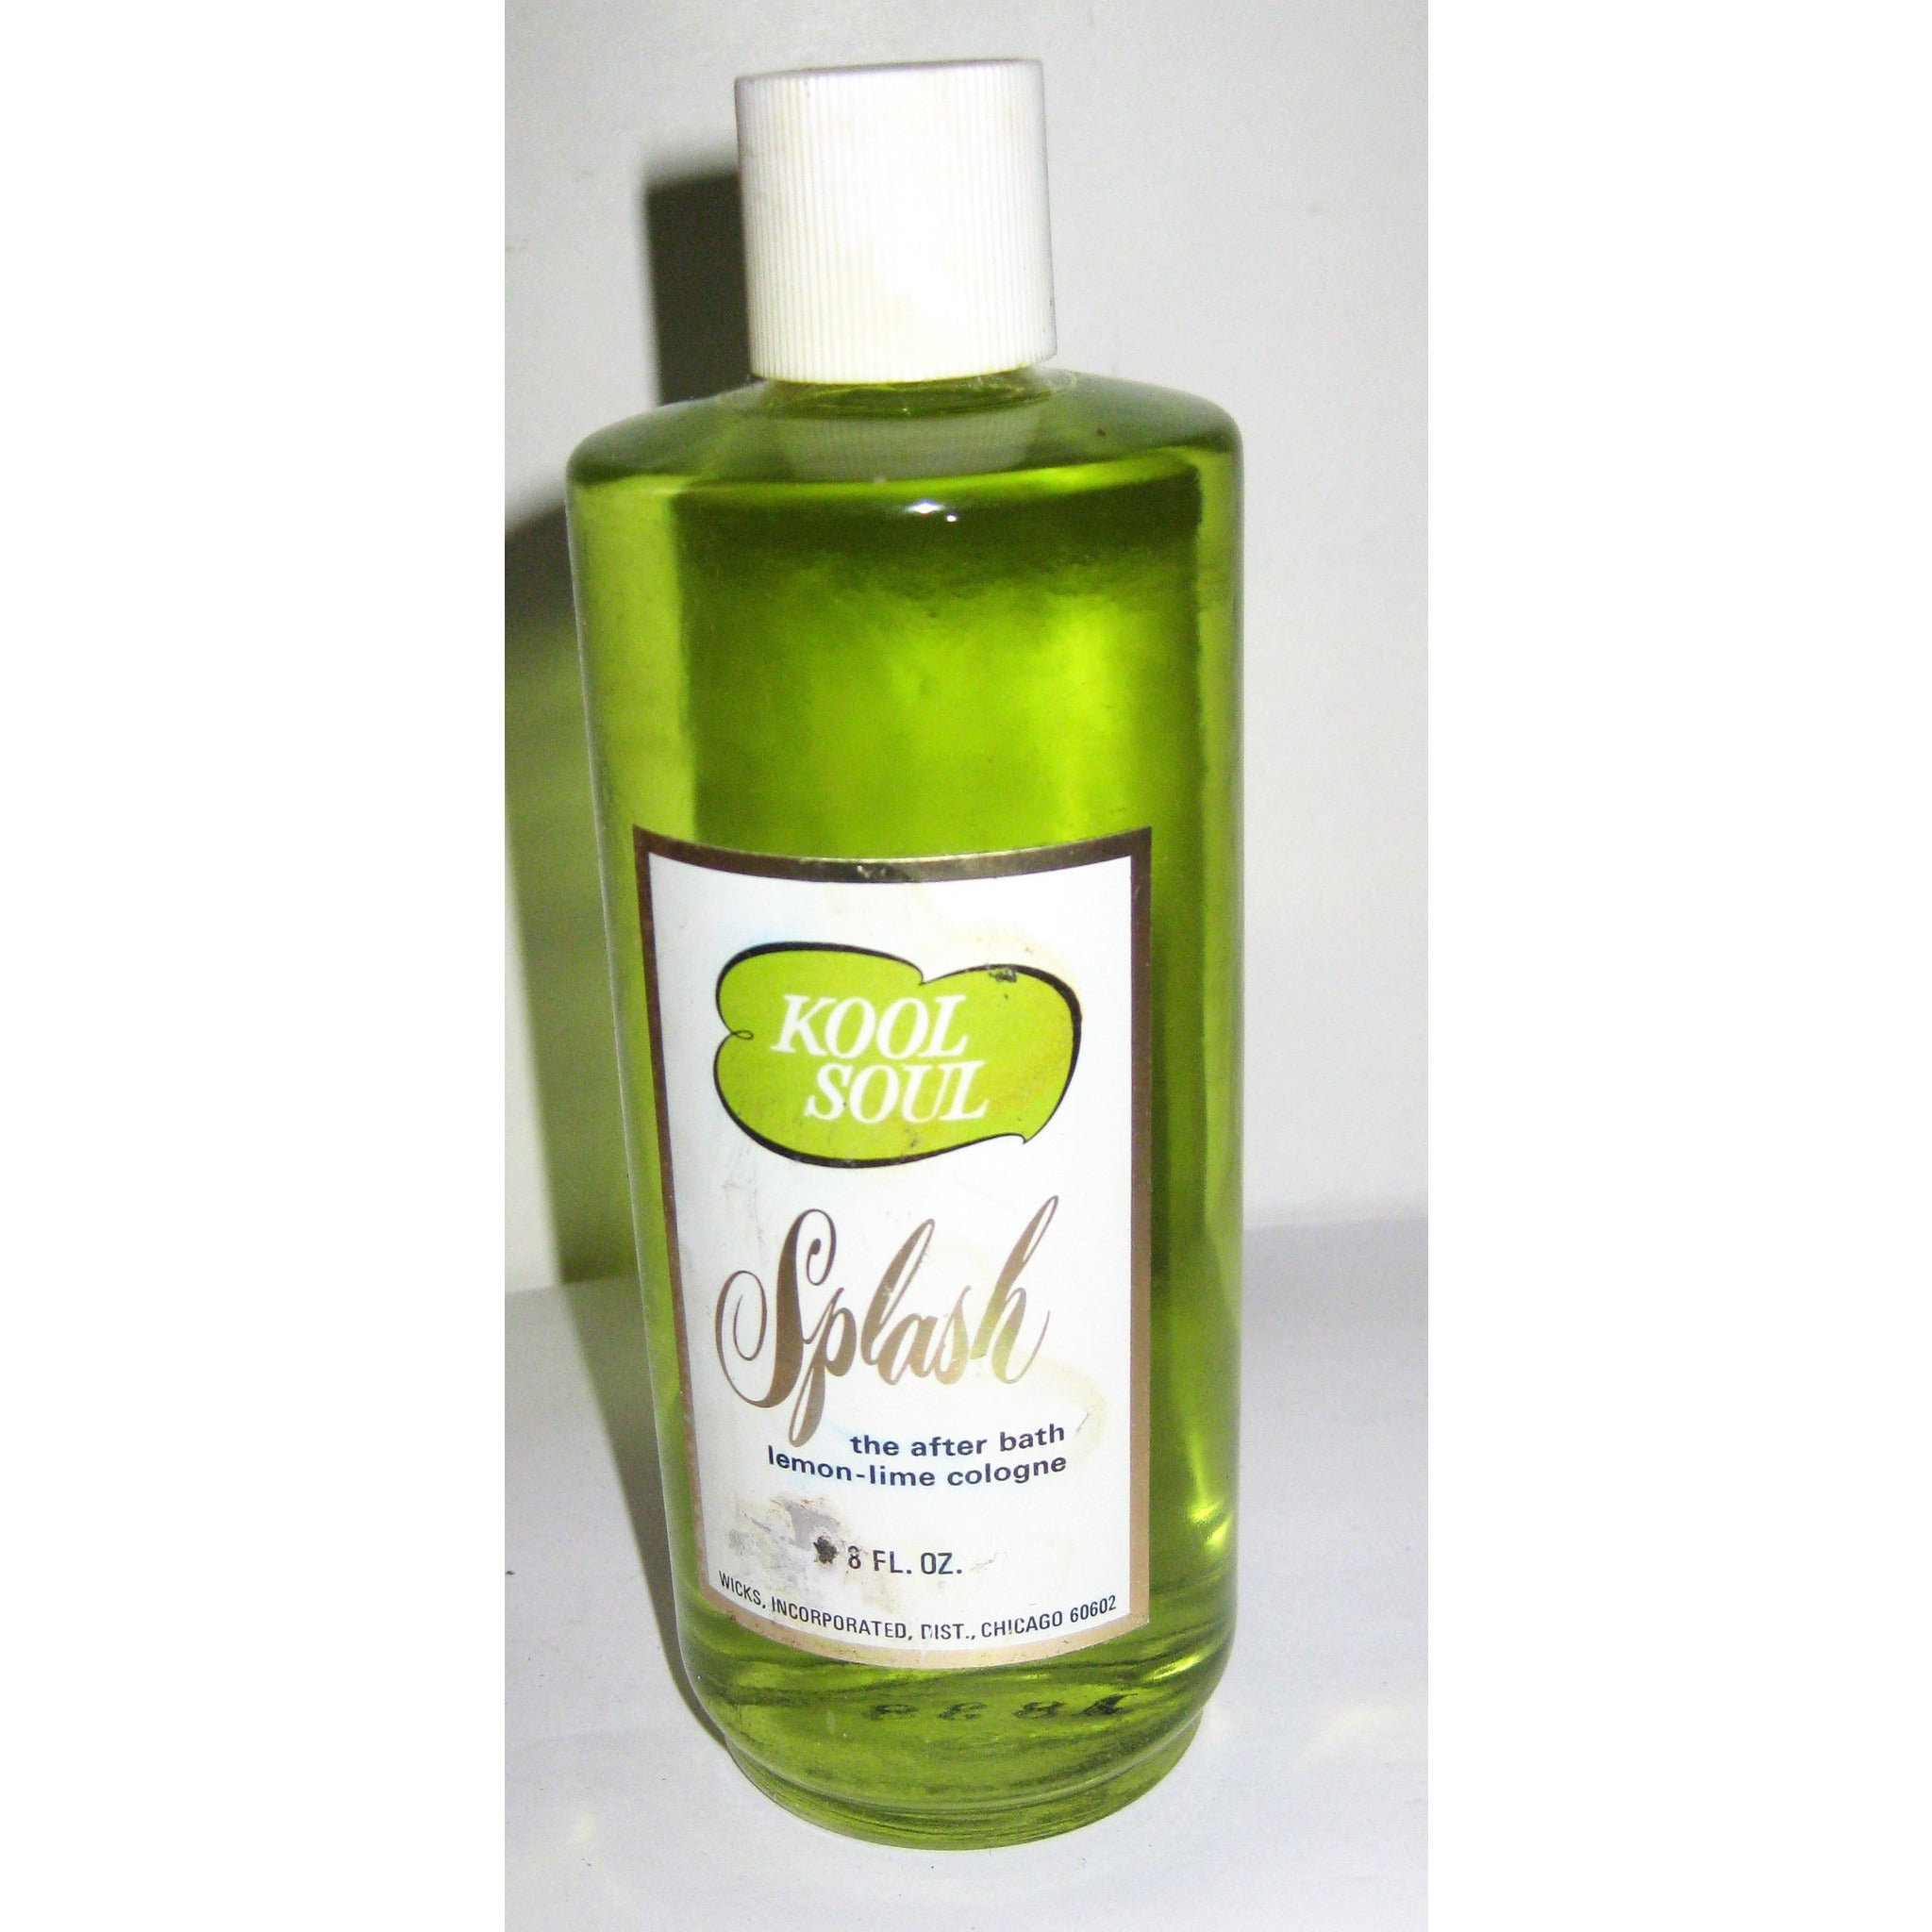 Vintage Kool Soul Lemon-Lime Cologne